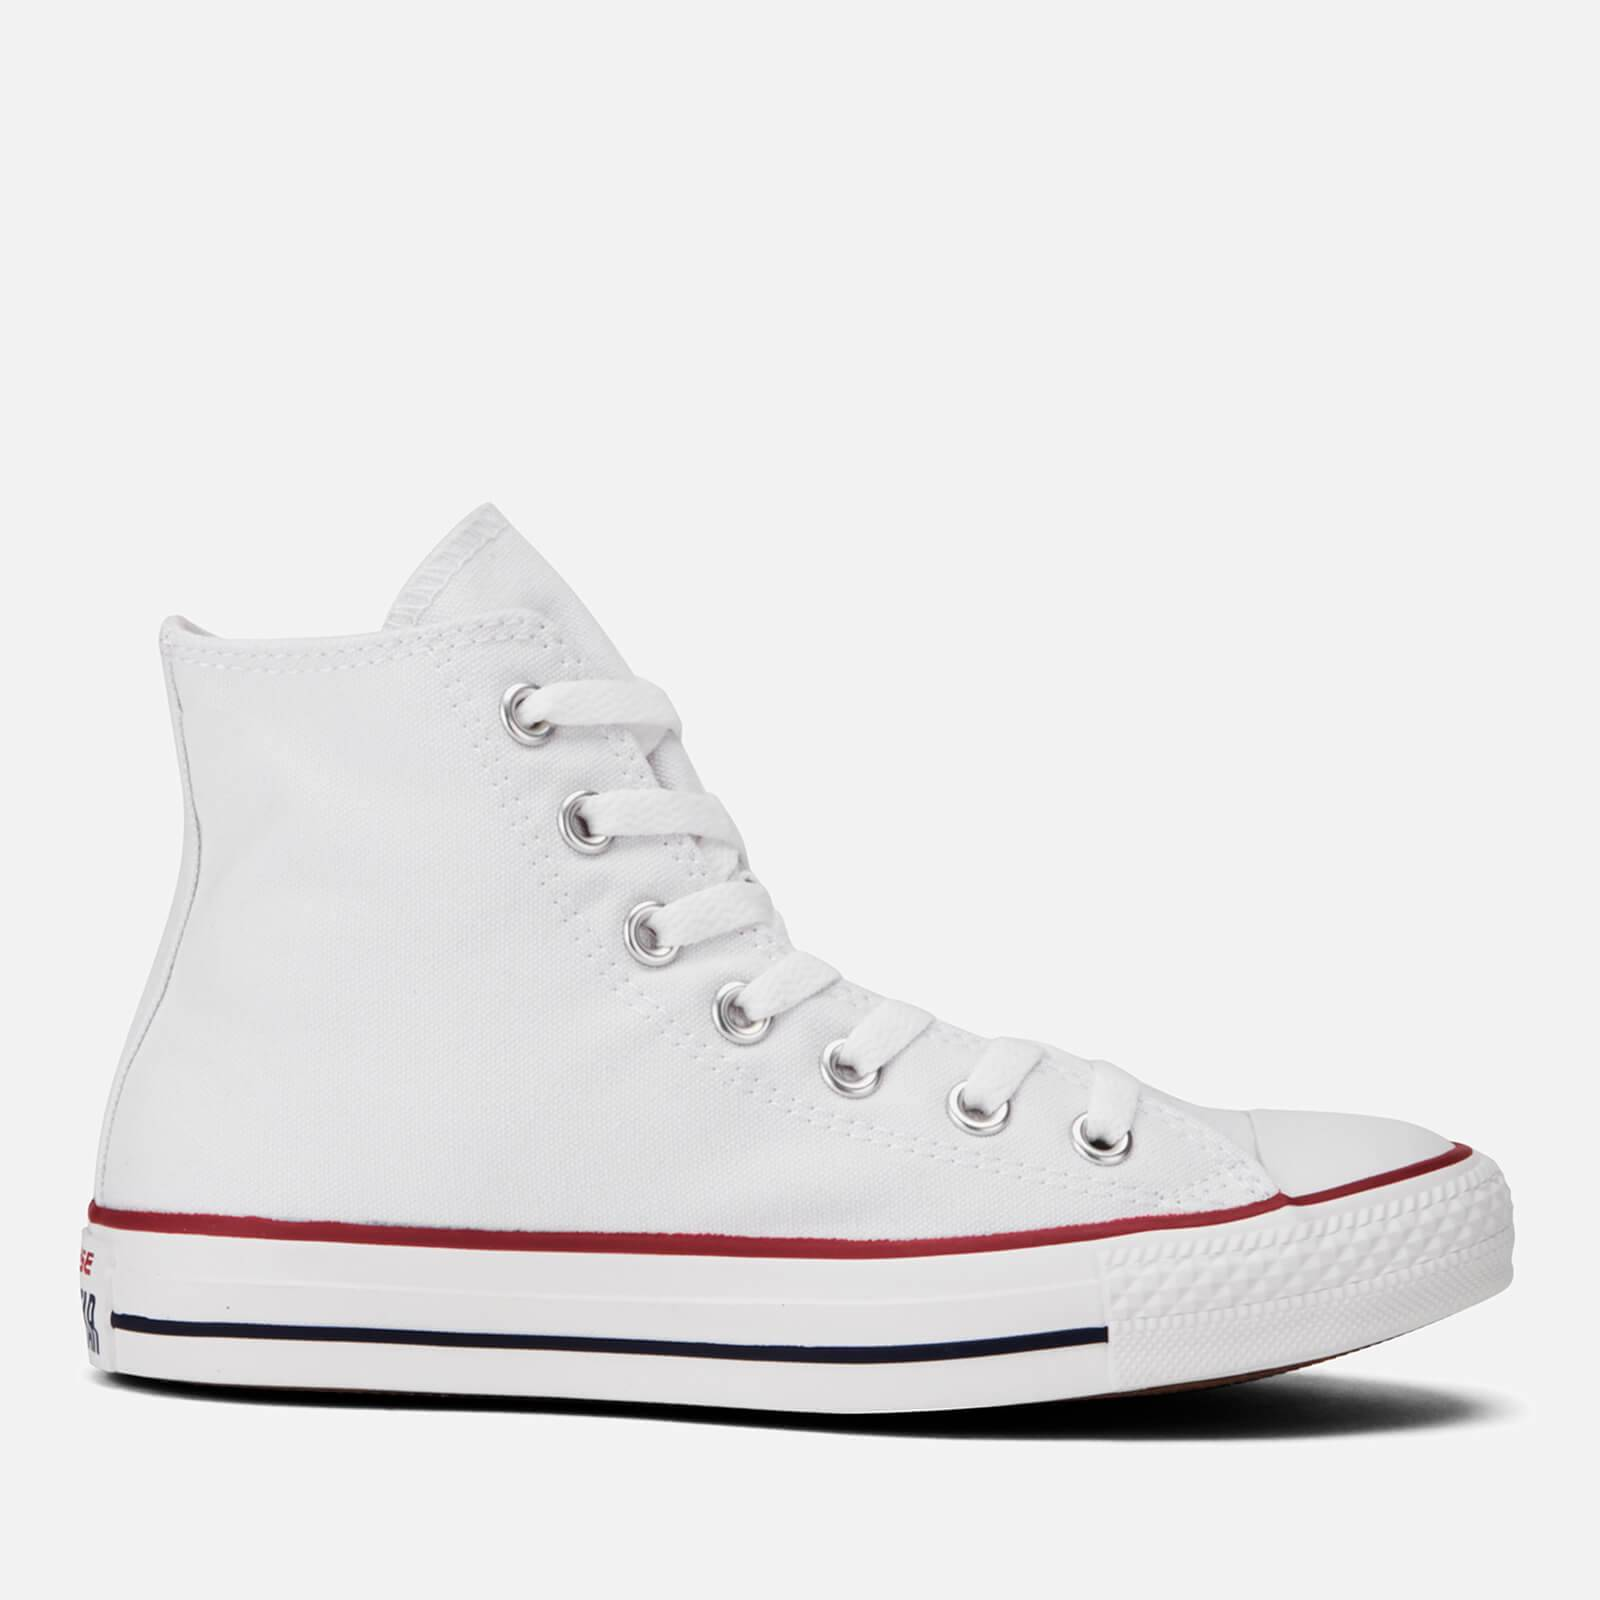 Converse Chuck Taylor All Star Hi-Top Trainers - Optical White - UK 12